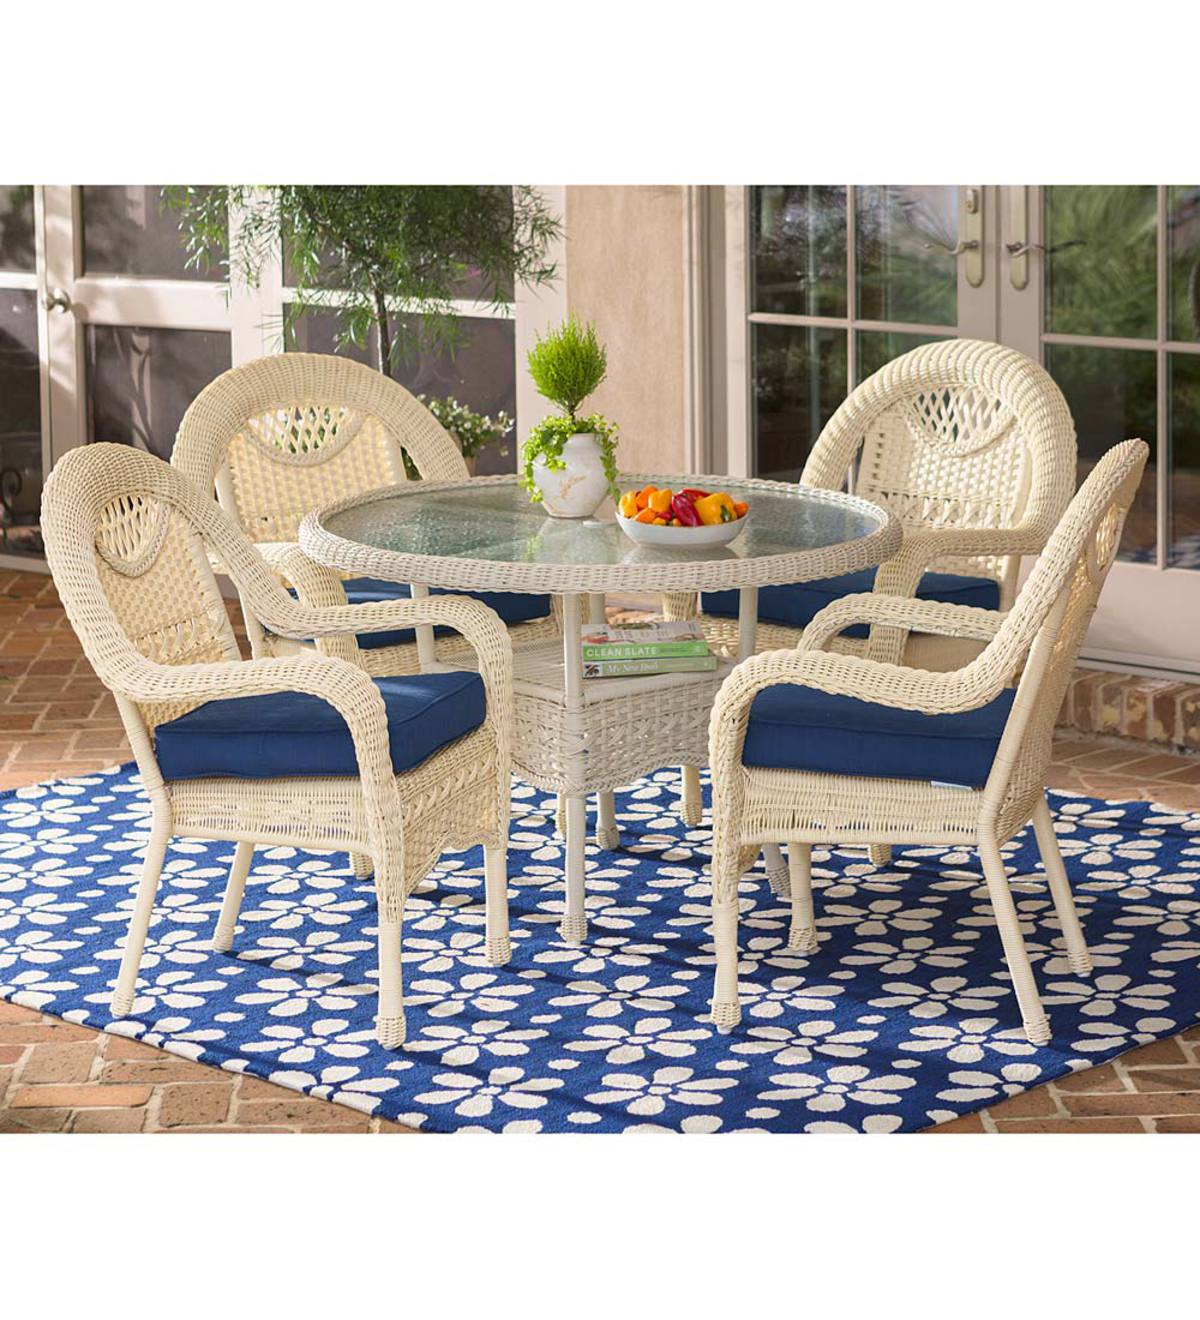 Beau Prospect Hill Wicker Round Dining Table And 4 Chairs Set   Cloud White